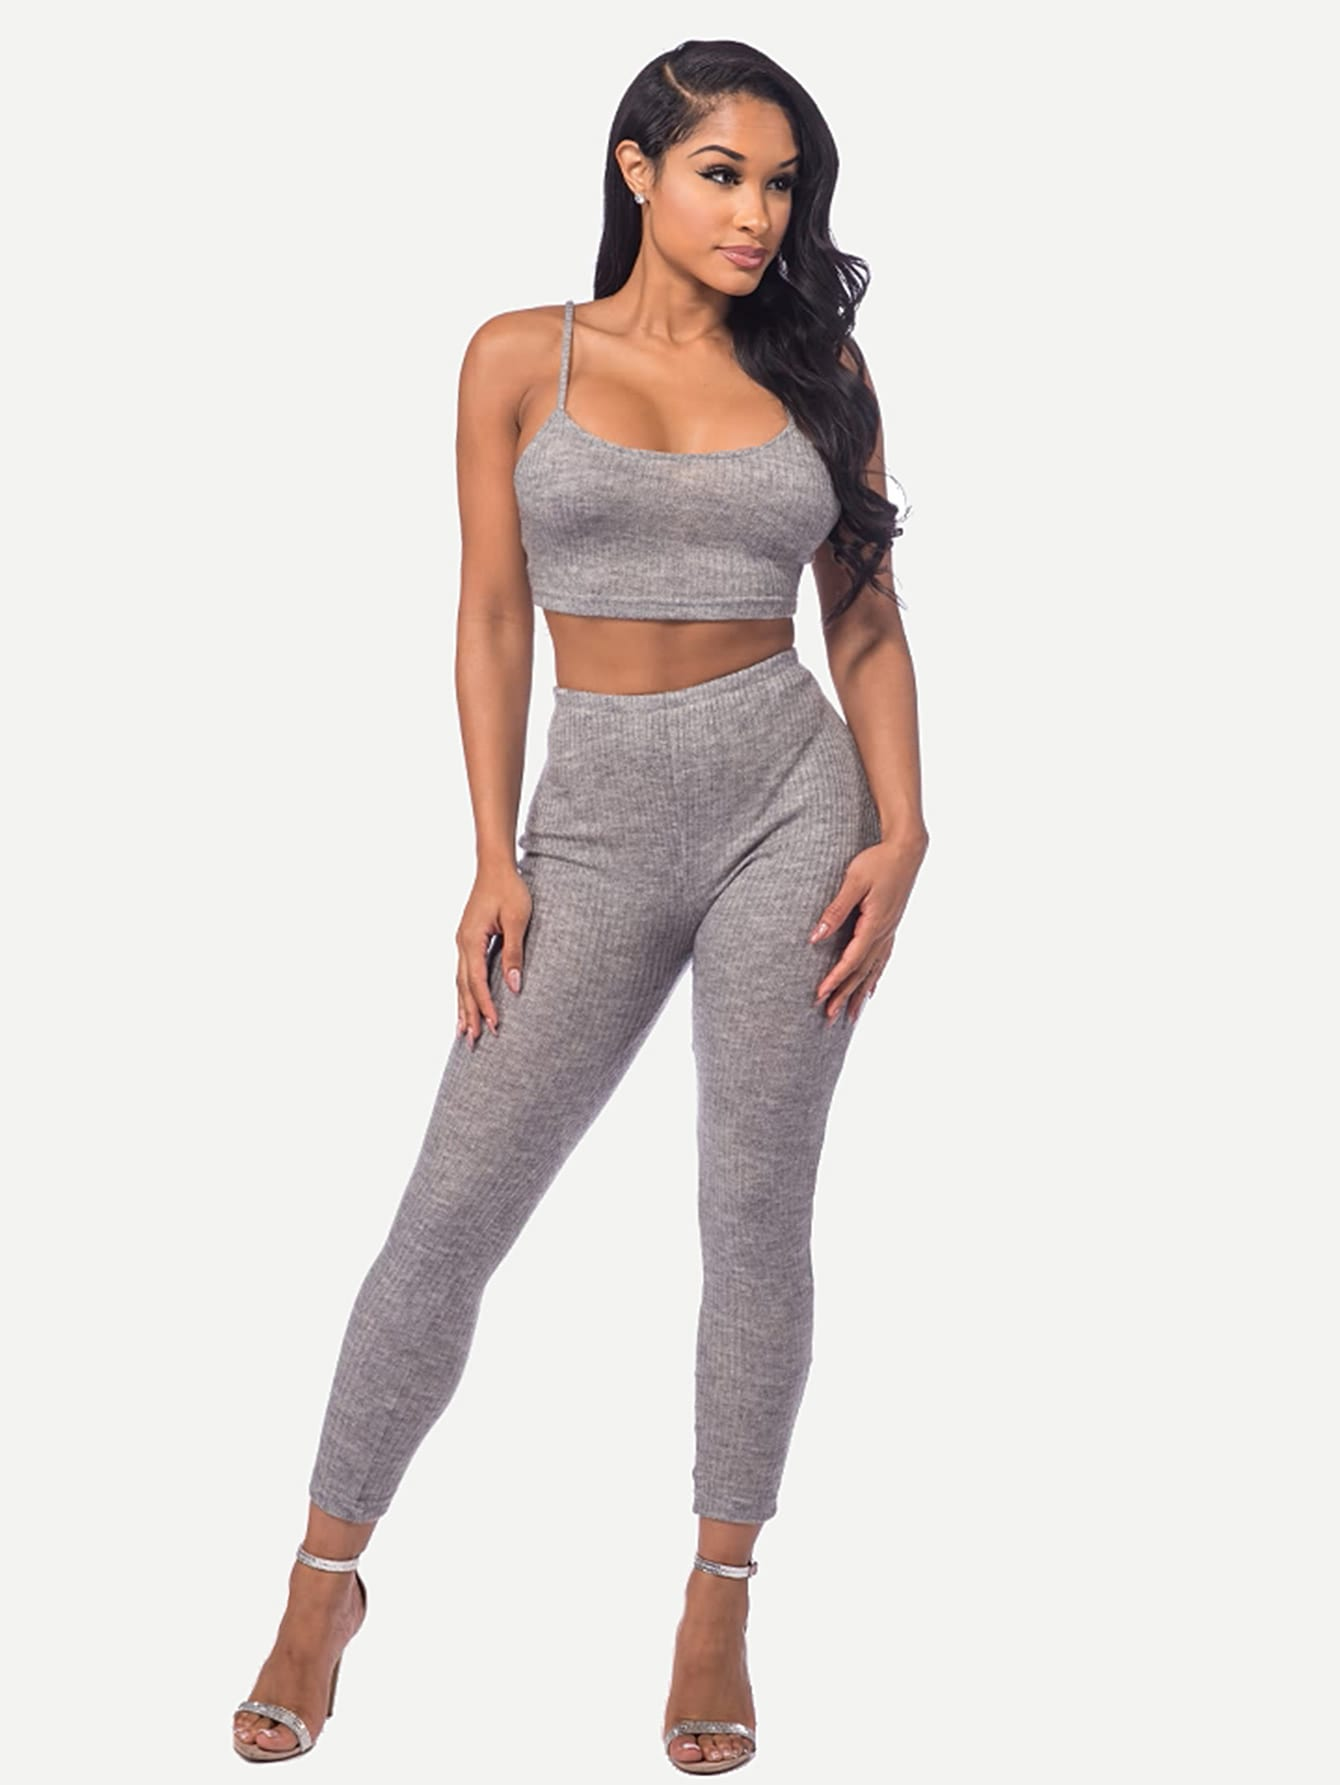 Marled Knit Crop Cami Top With Leggings twopiece170703303